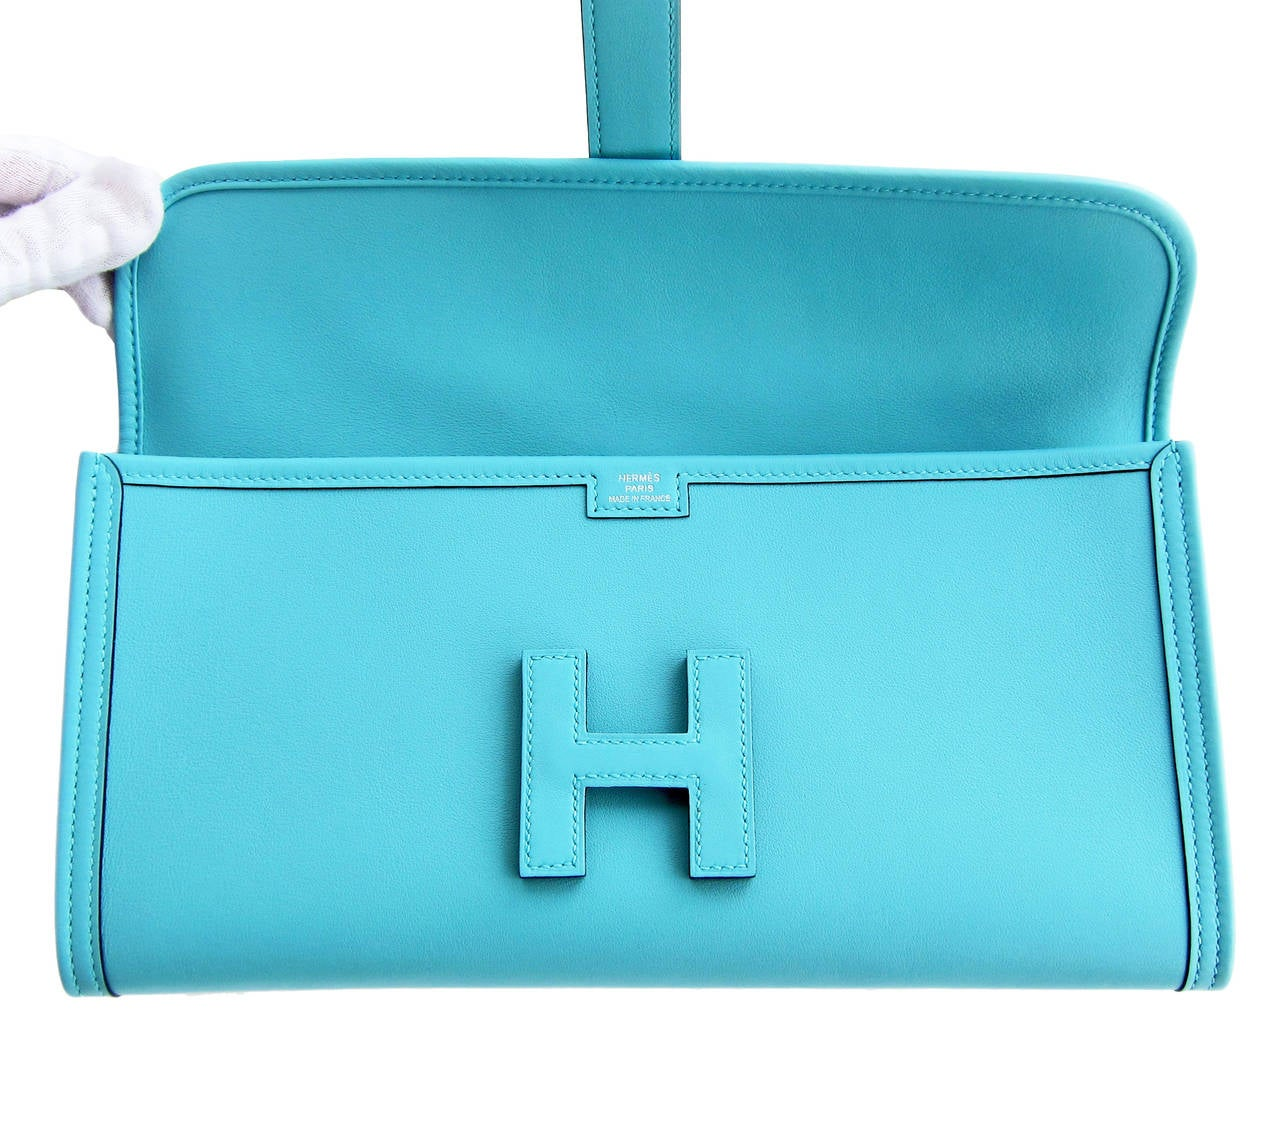 Hermes Blue Atoll Jige Elan 29cm Swift Clutch Bag Stunning For Sale 1